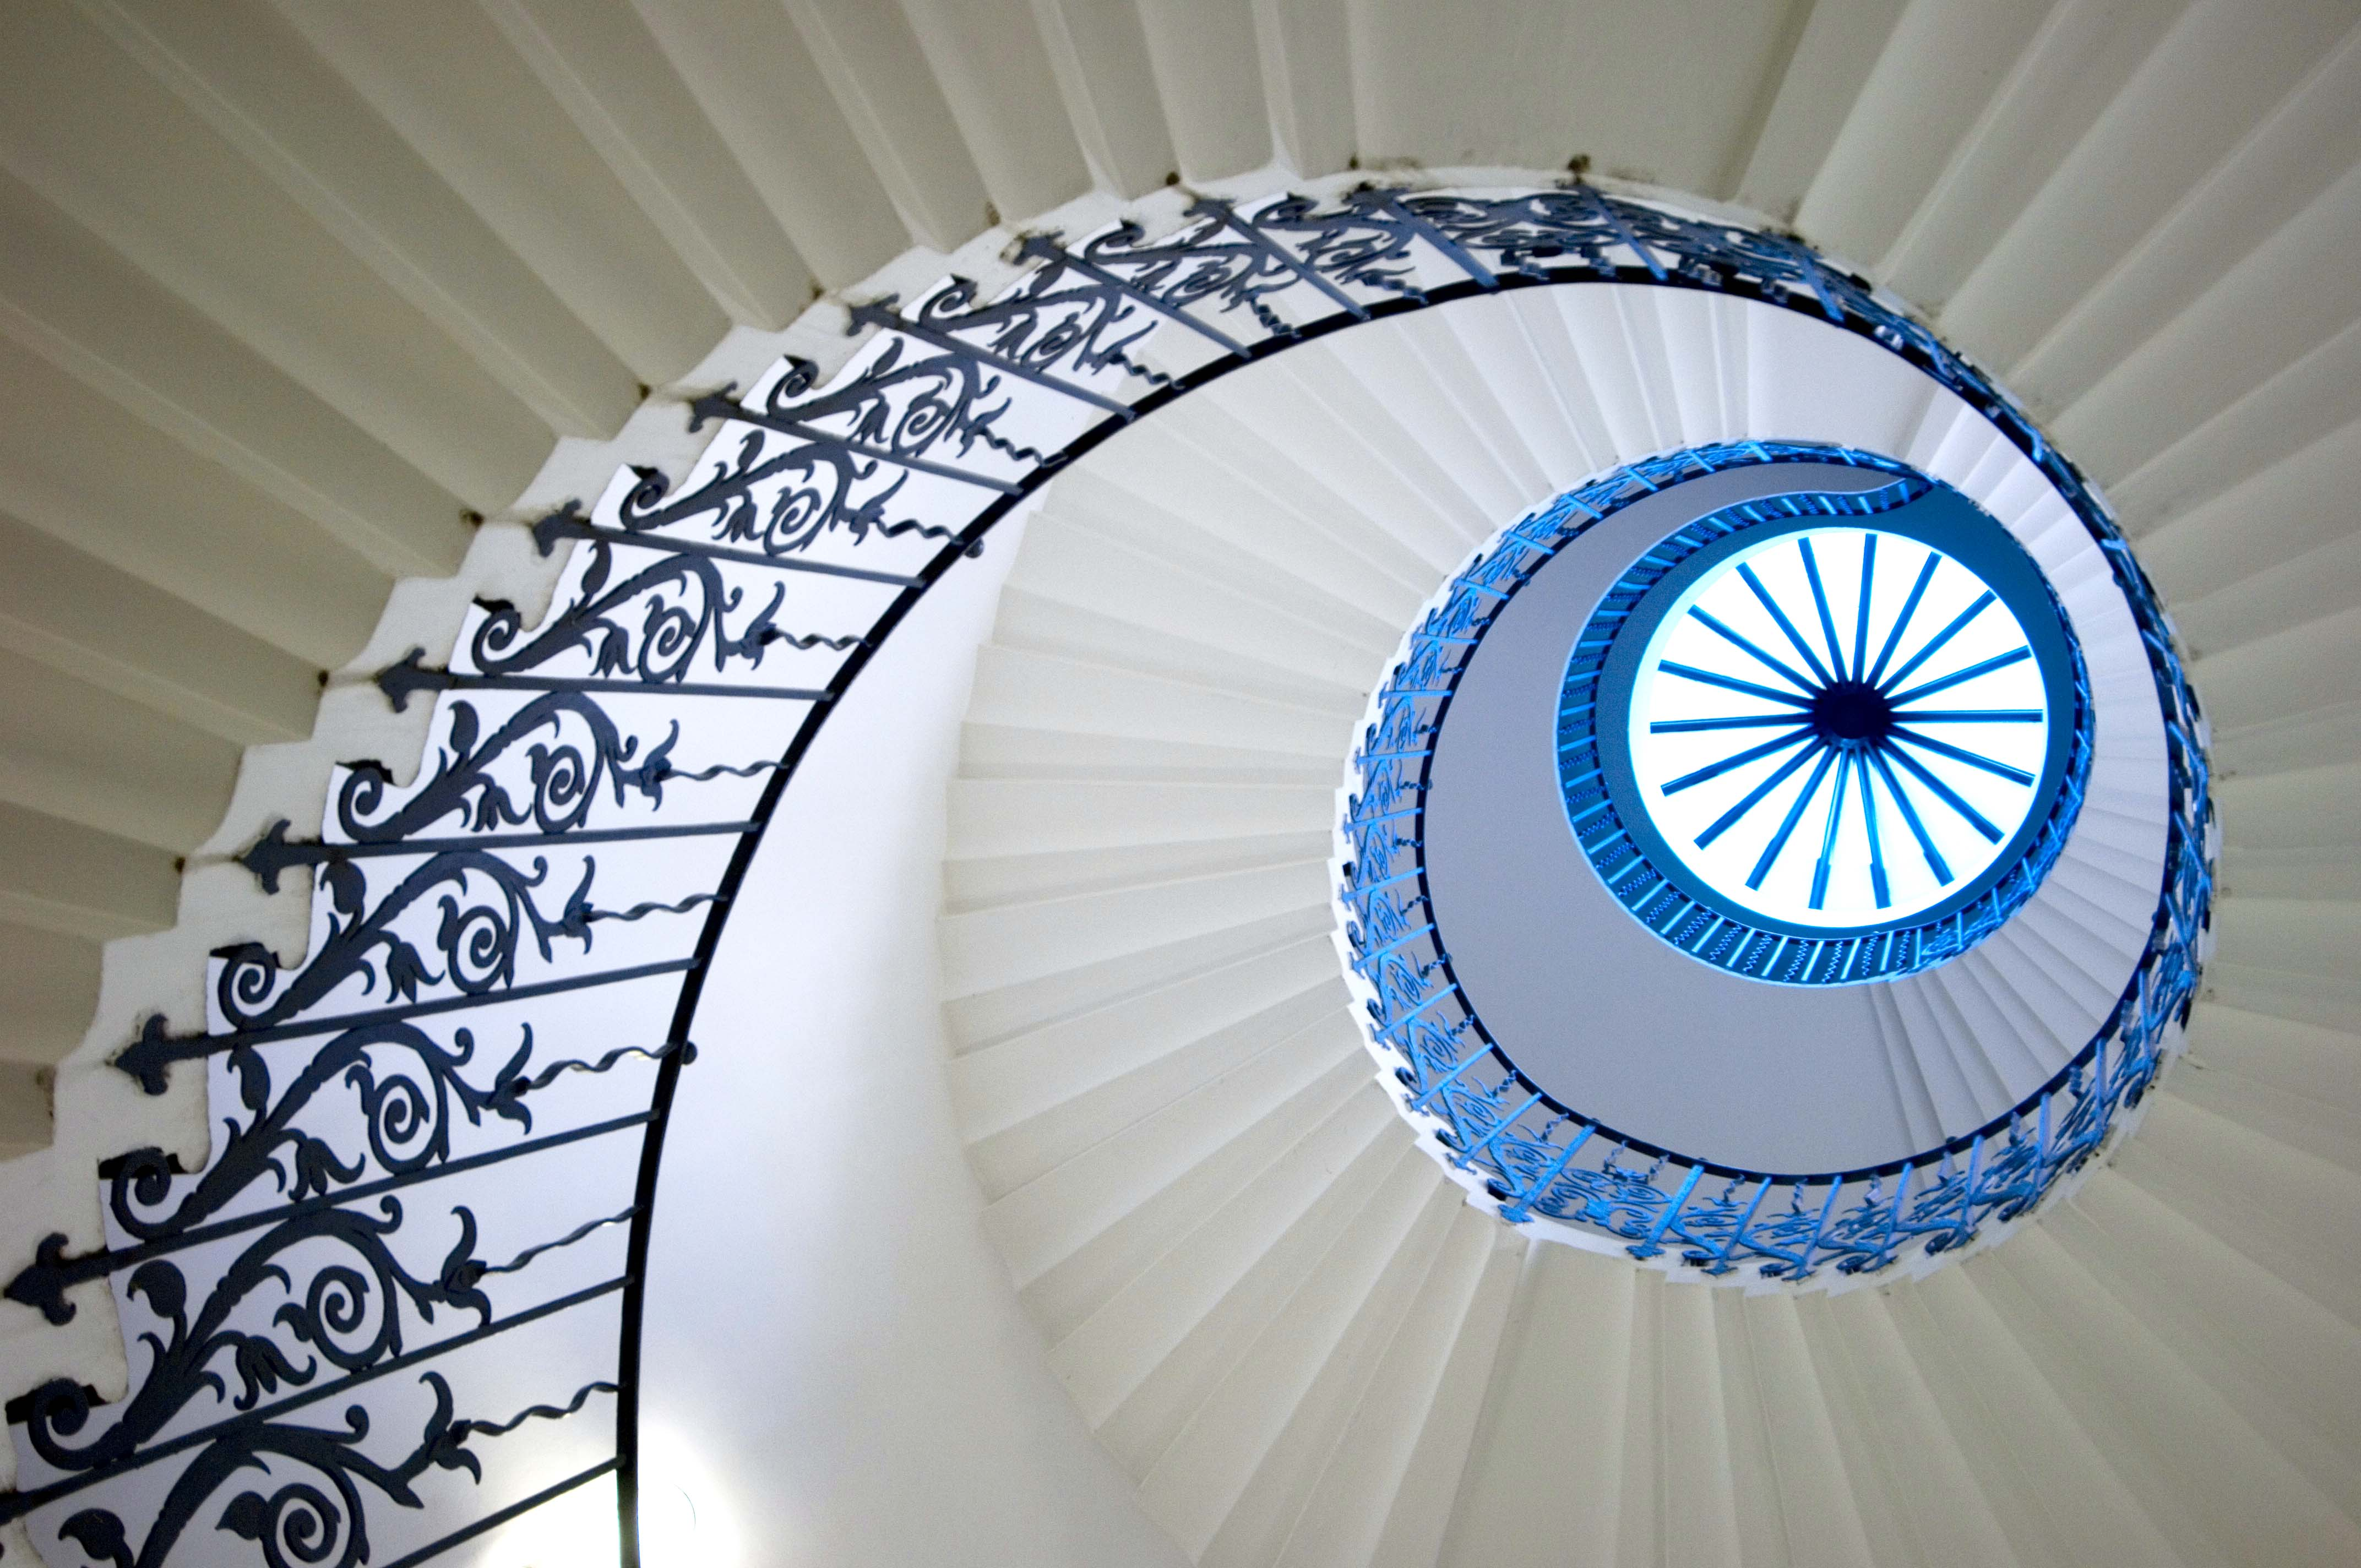 Tulip Staircase at The Queen's House